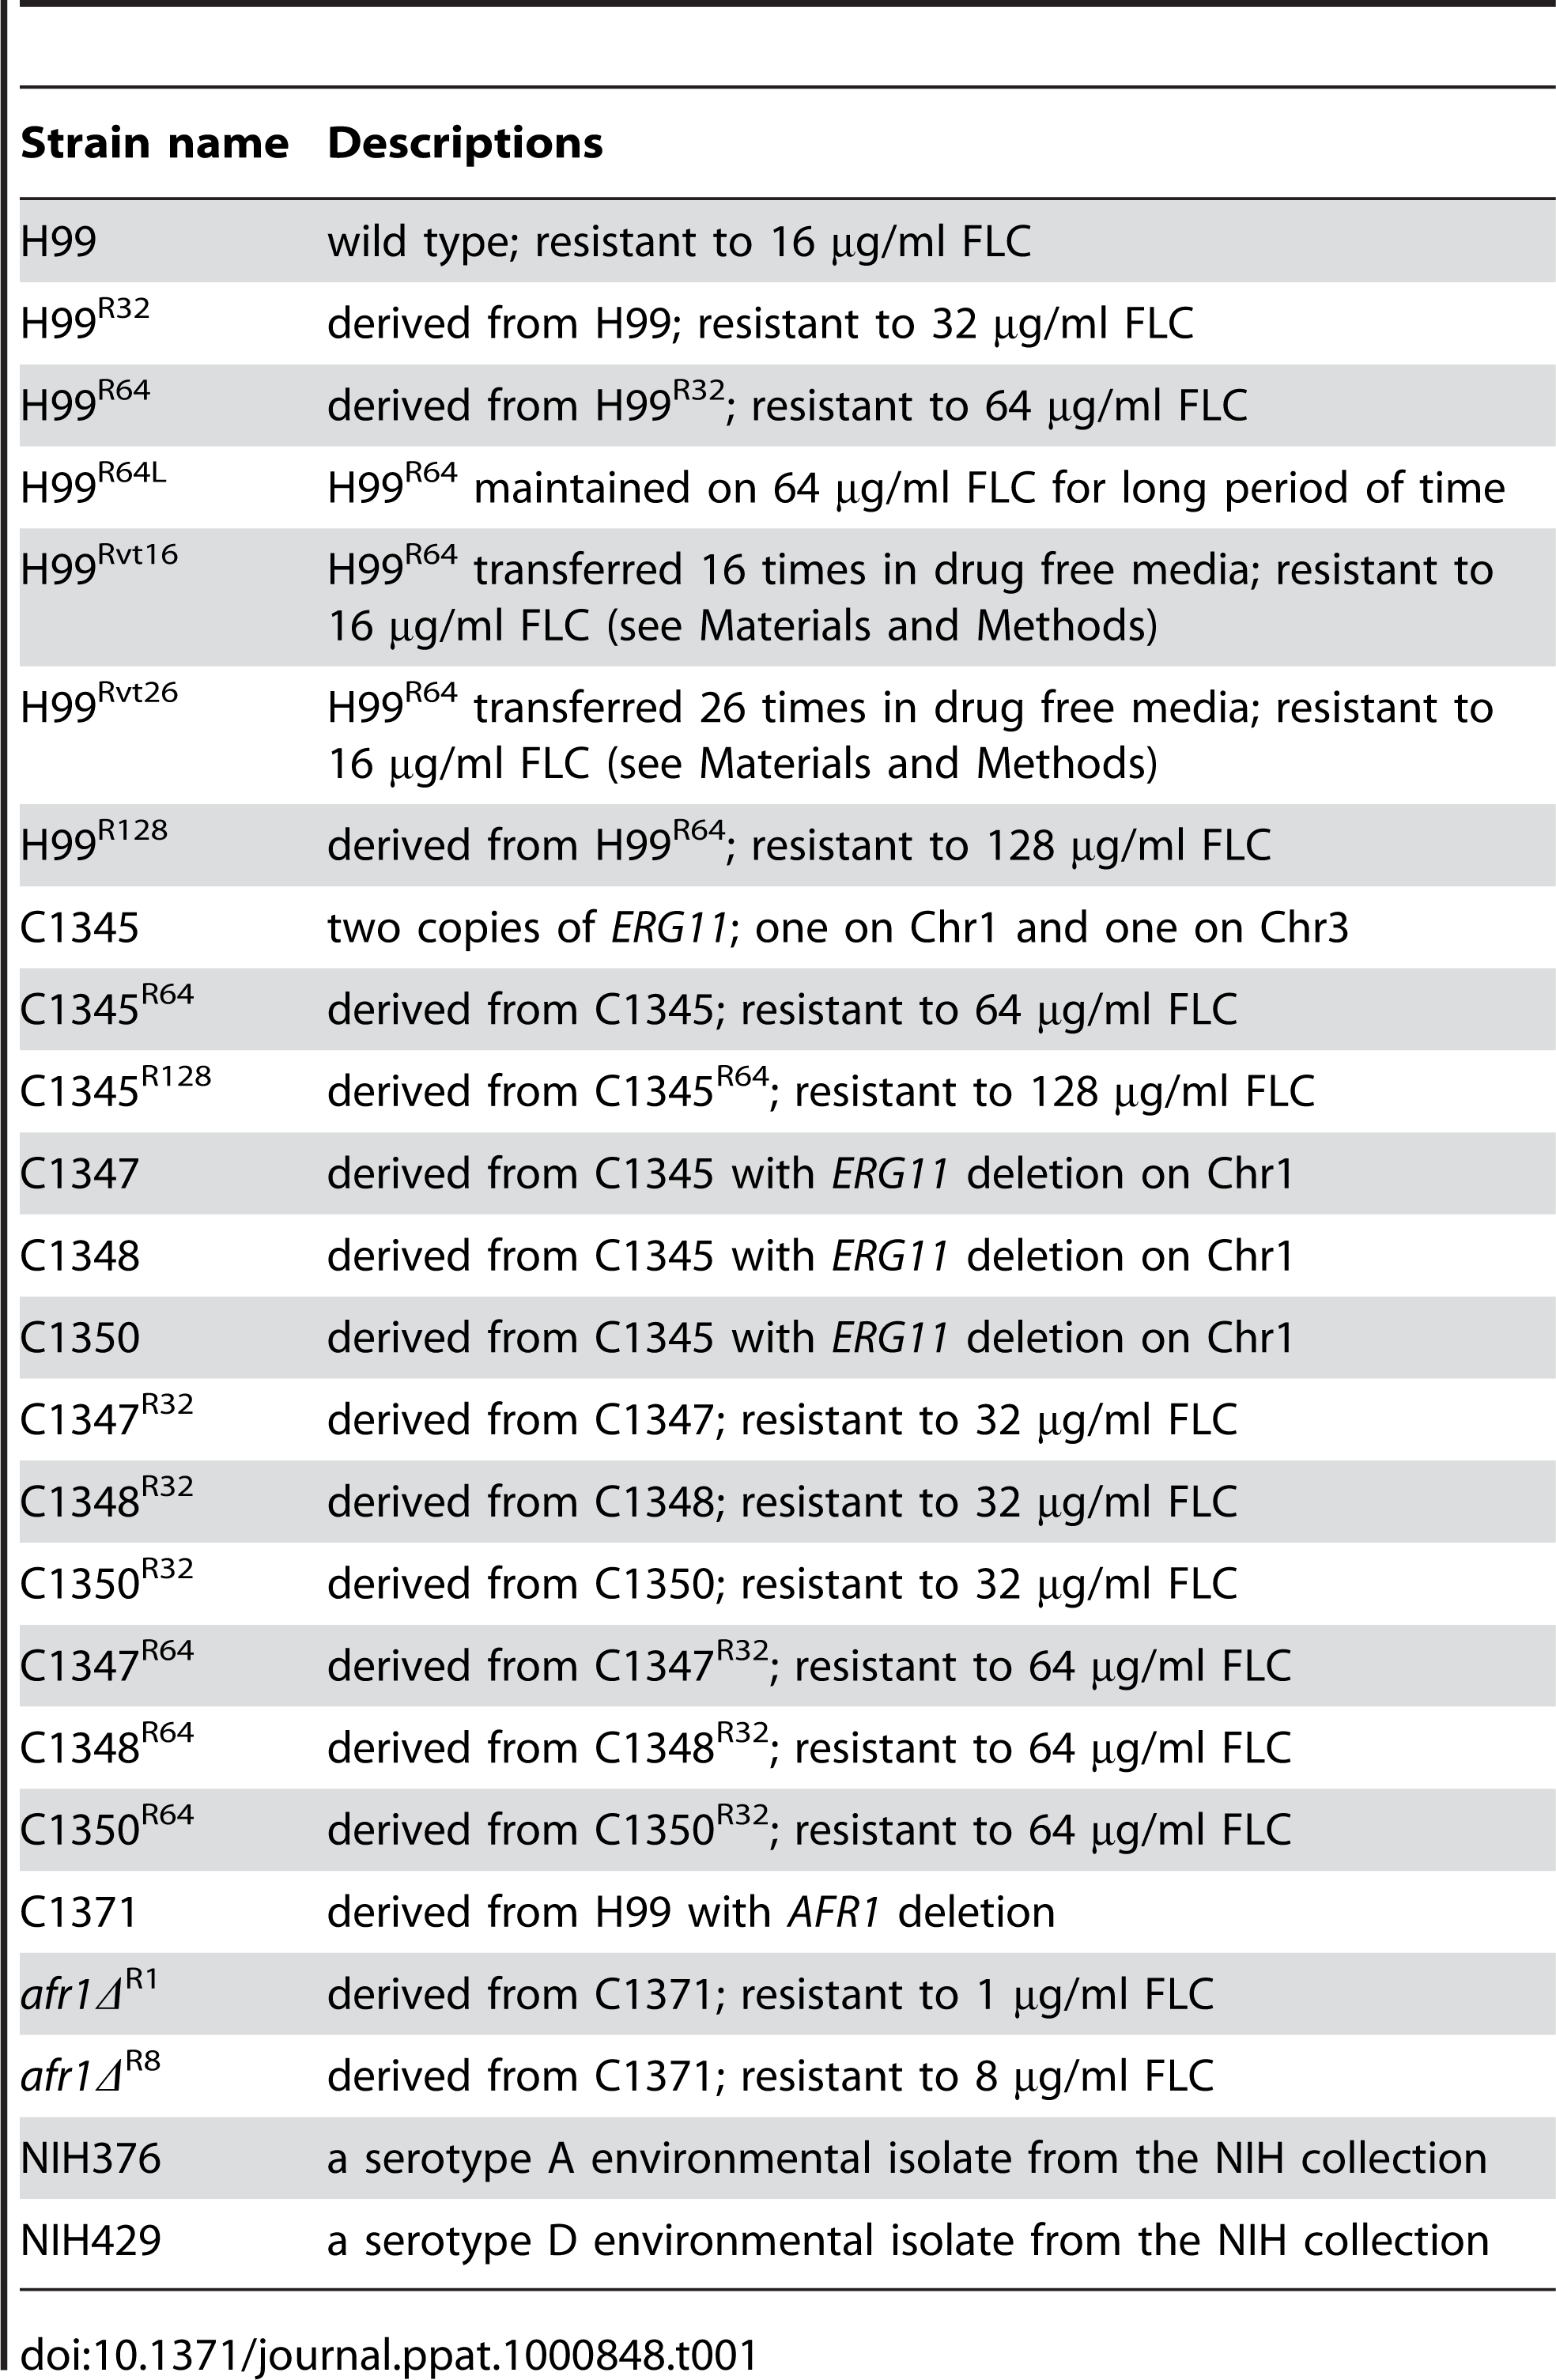 Strains used in the study.